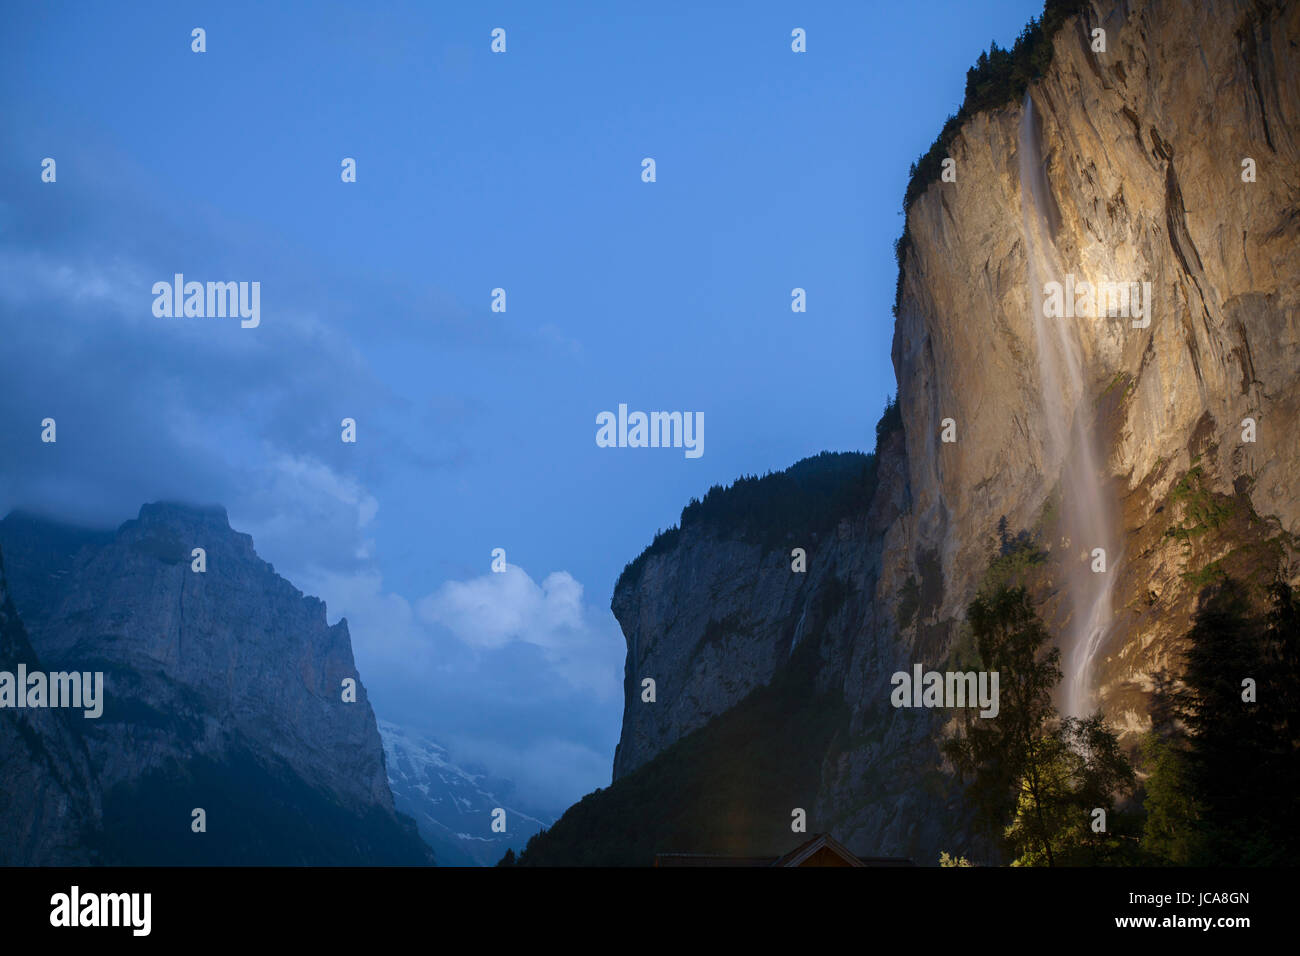 A waterfall at night in the Lauterbrunnen valley of Switzerland. - Stock Image